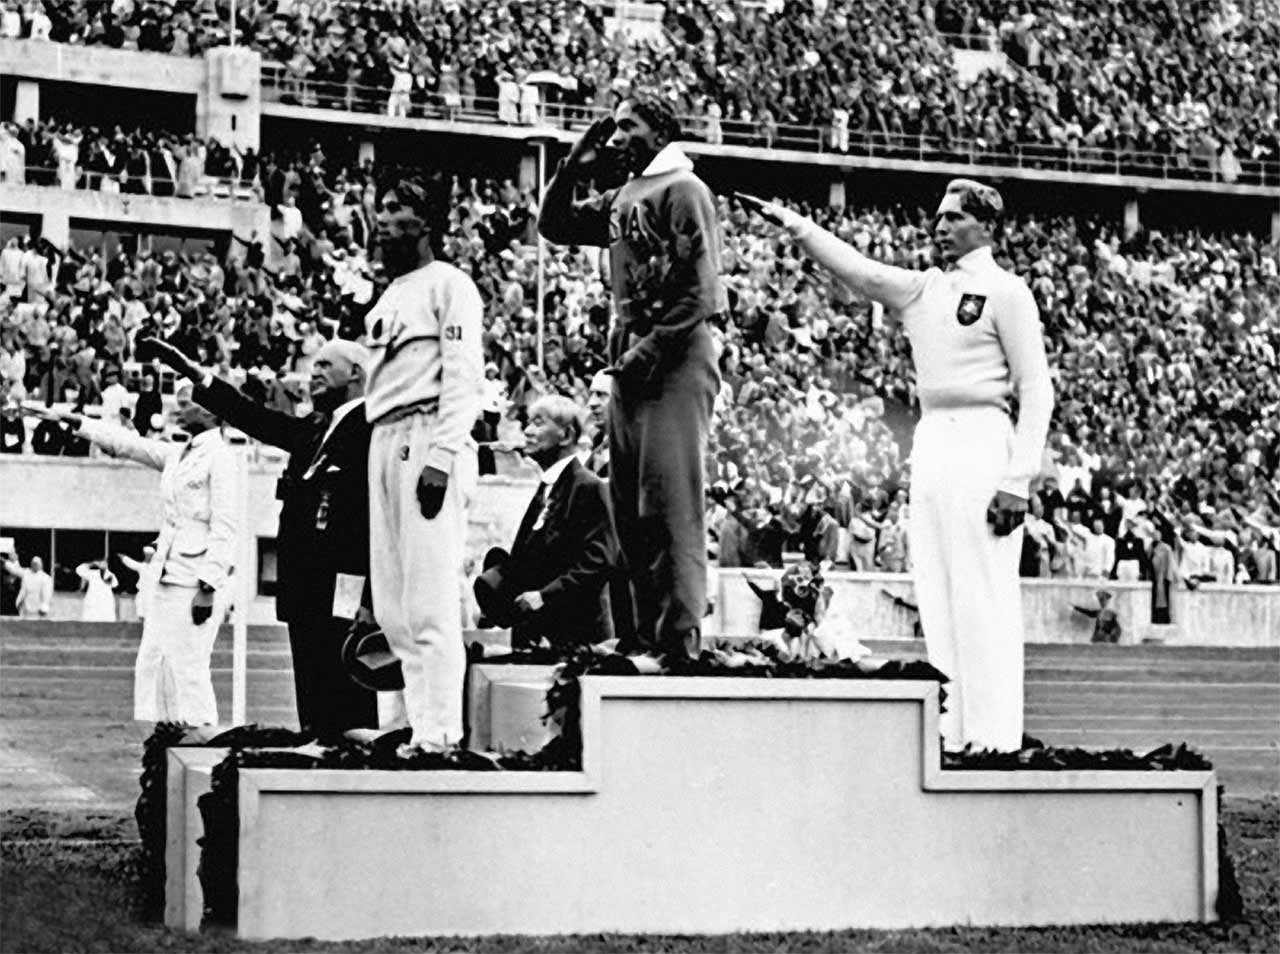 Jesse Owens receiving the gold medal